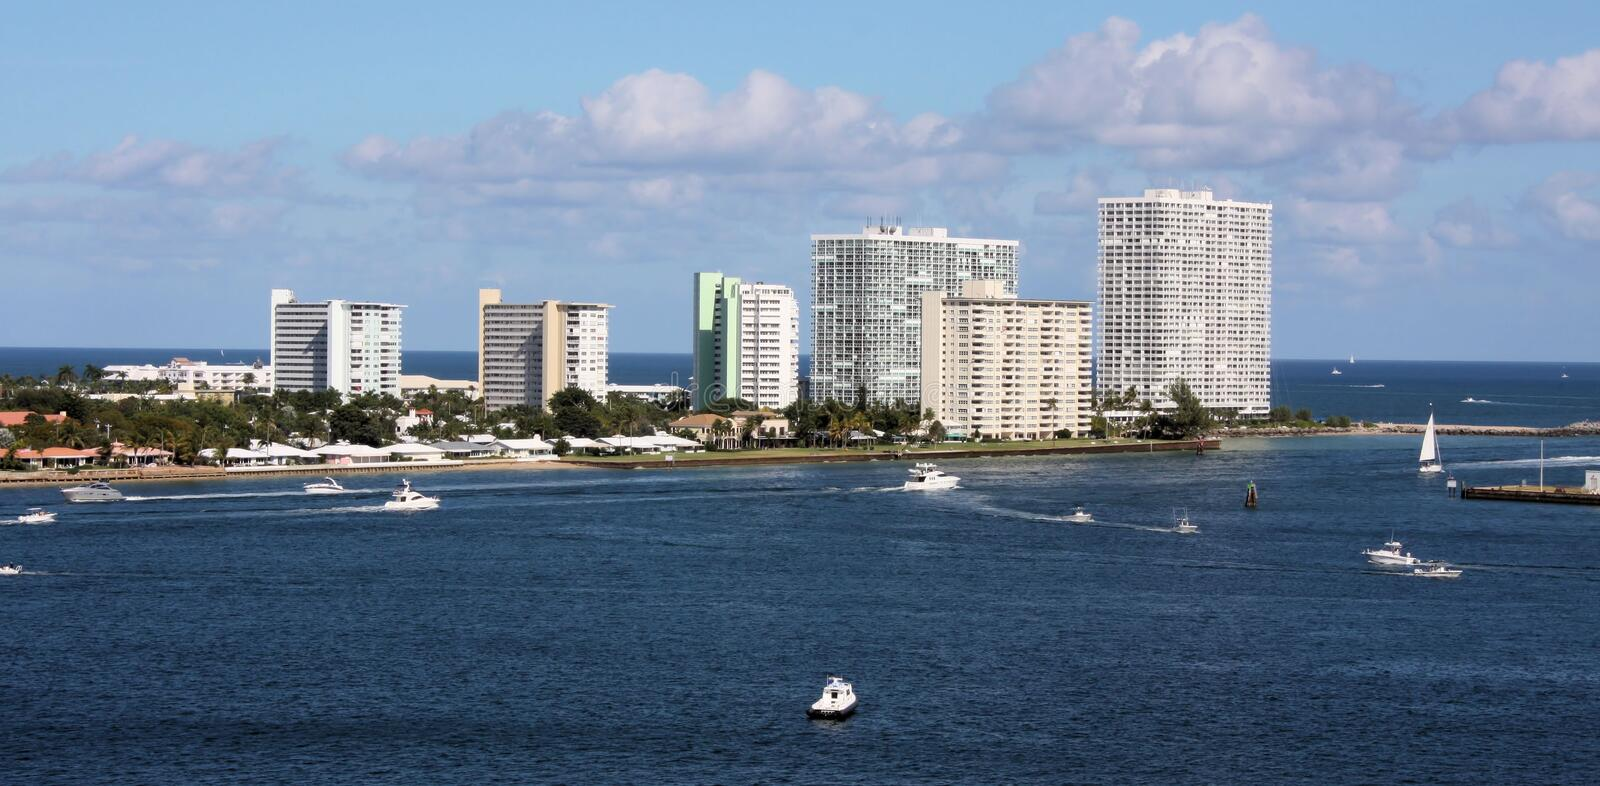 Port of Fort Lauderdale. With hotels, boats and landscape stock photo